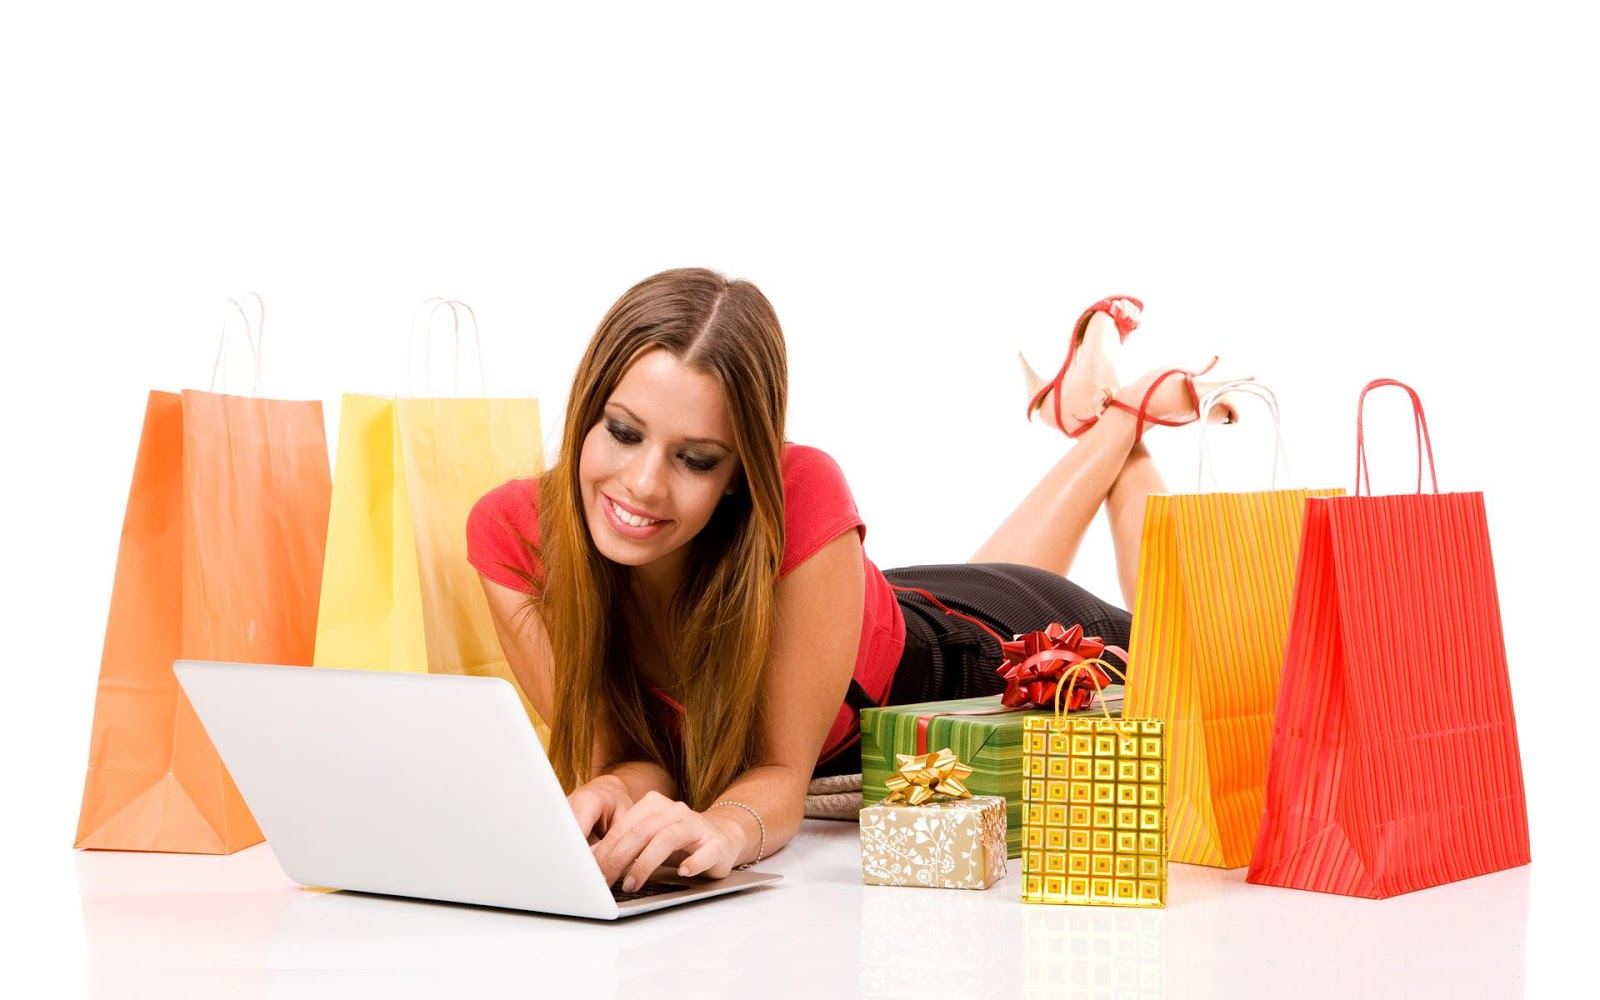 Australian Online Shop Online Shopping Australia Online Clothes Shopping